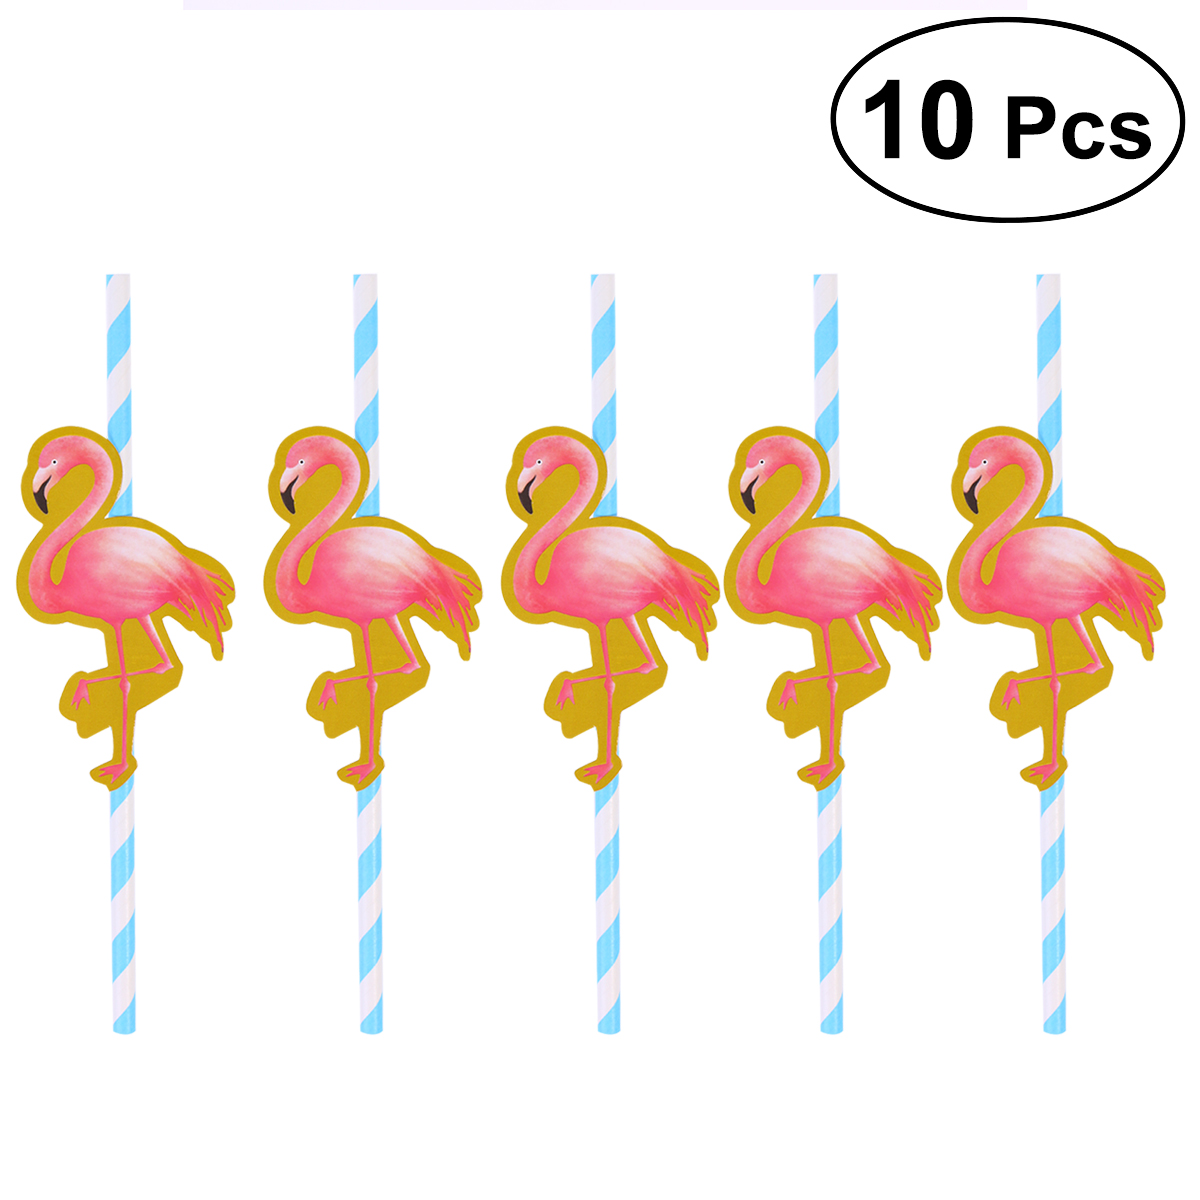 10 Pcs Hawaiian Party Paper Straws Decorative Drinking Straws Luau Party Table Decor BBQ Hawaiian Theme Decoration Flamingo (Blue)